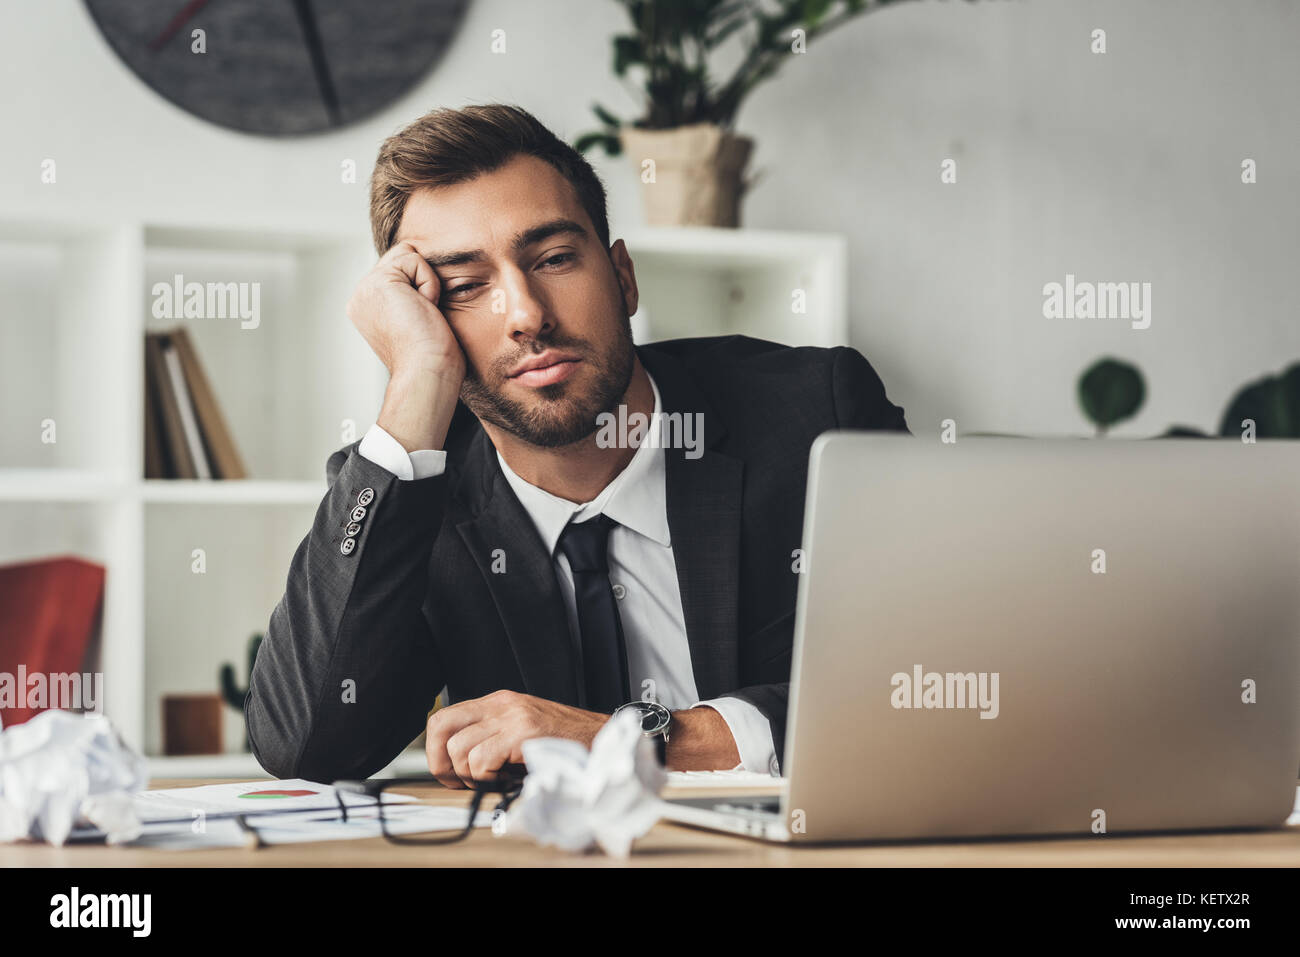 sleeping overworked businessman - Stock Image